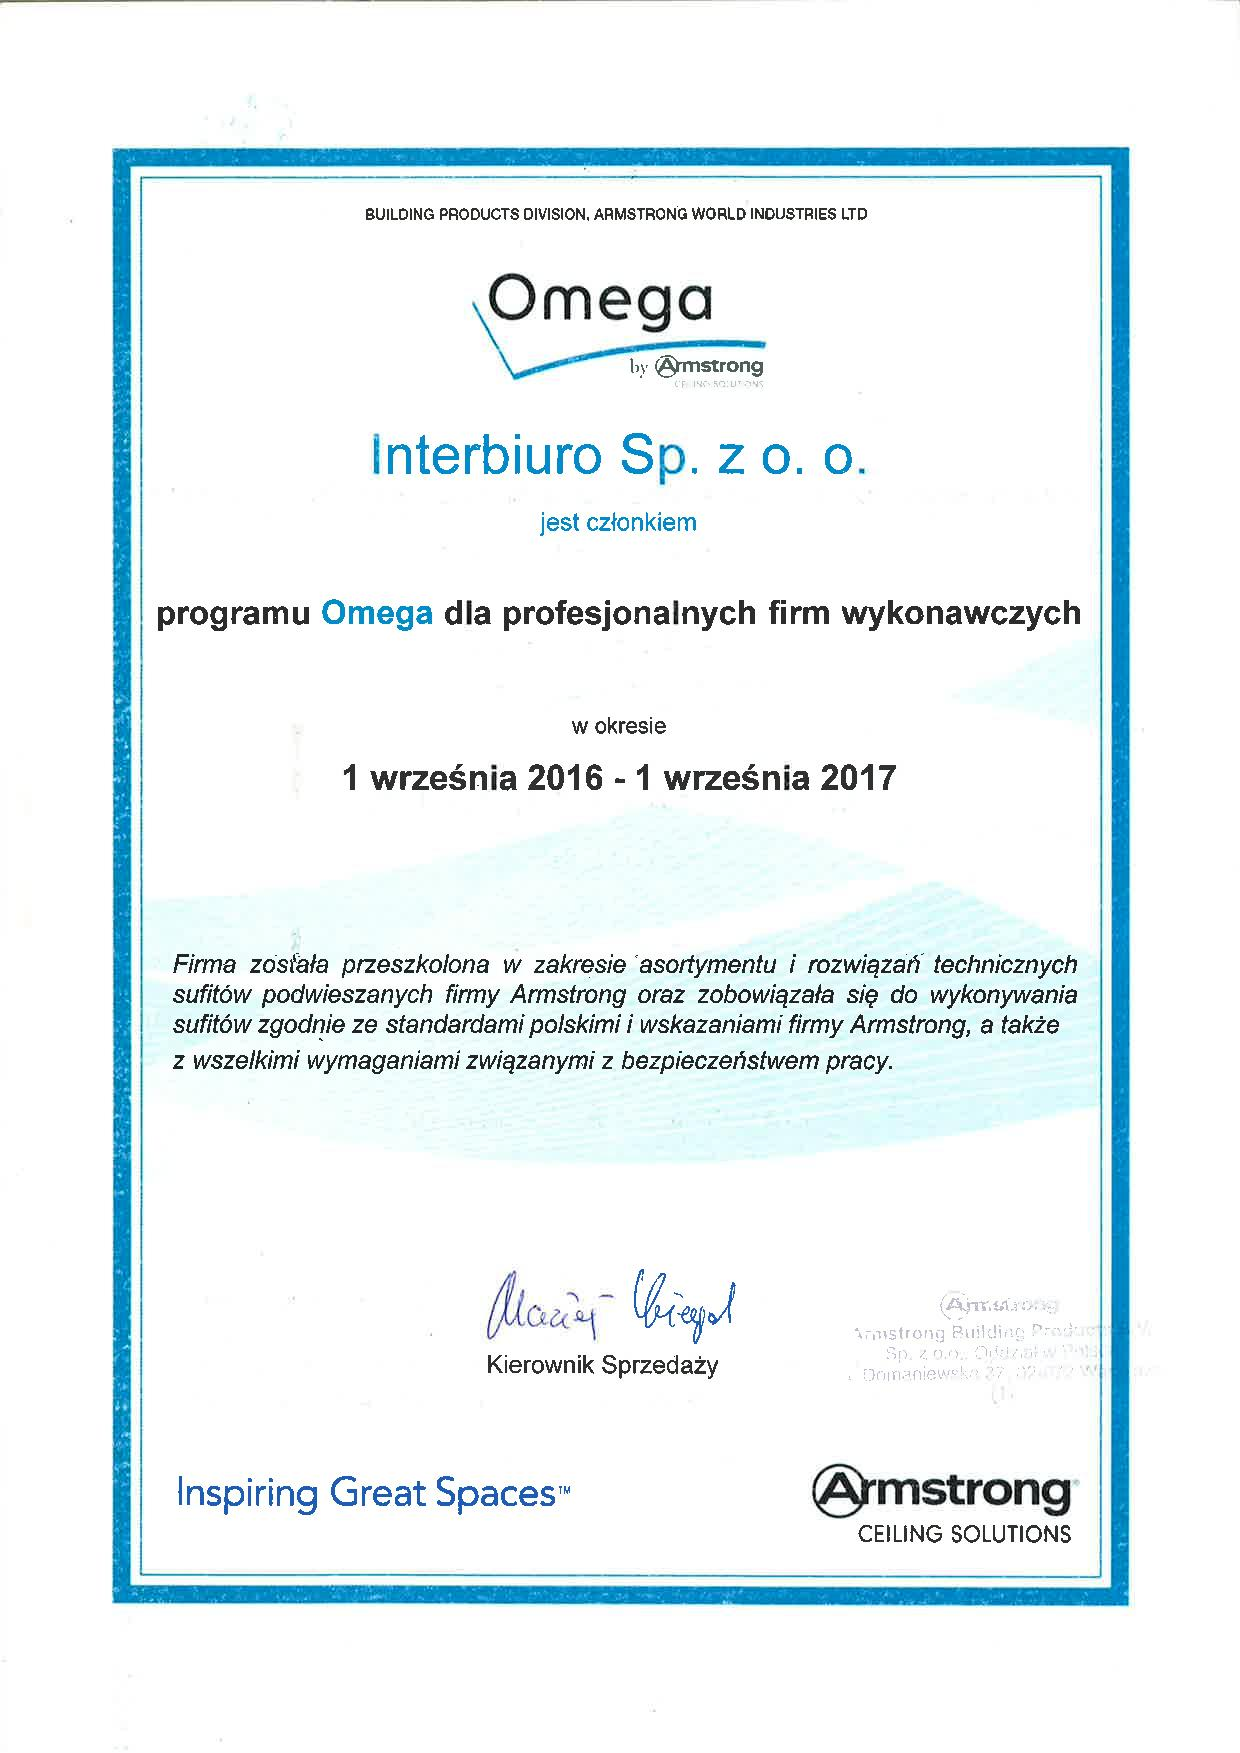 Interbiuro is a member of Omega program for professional contractors